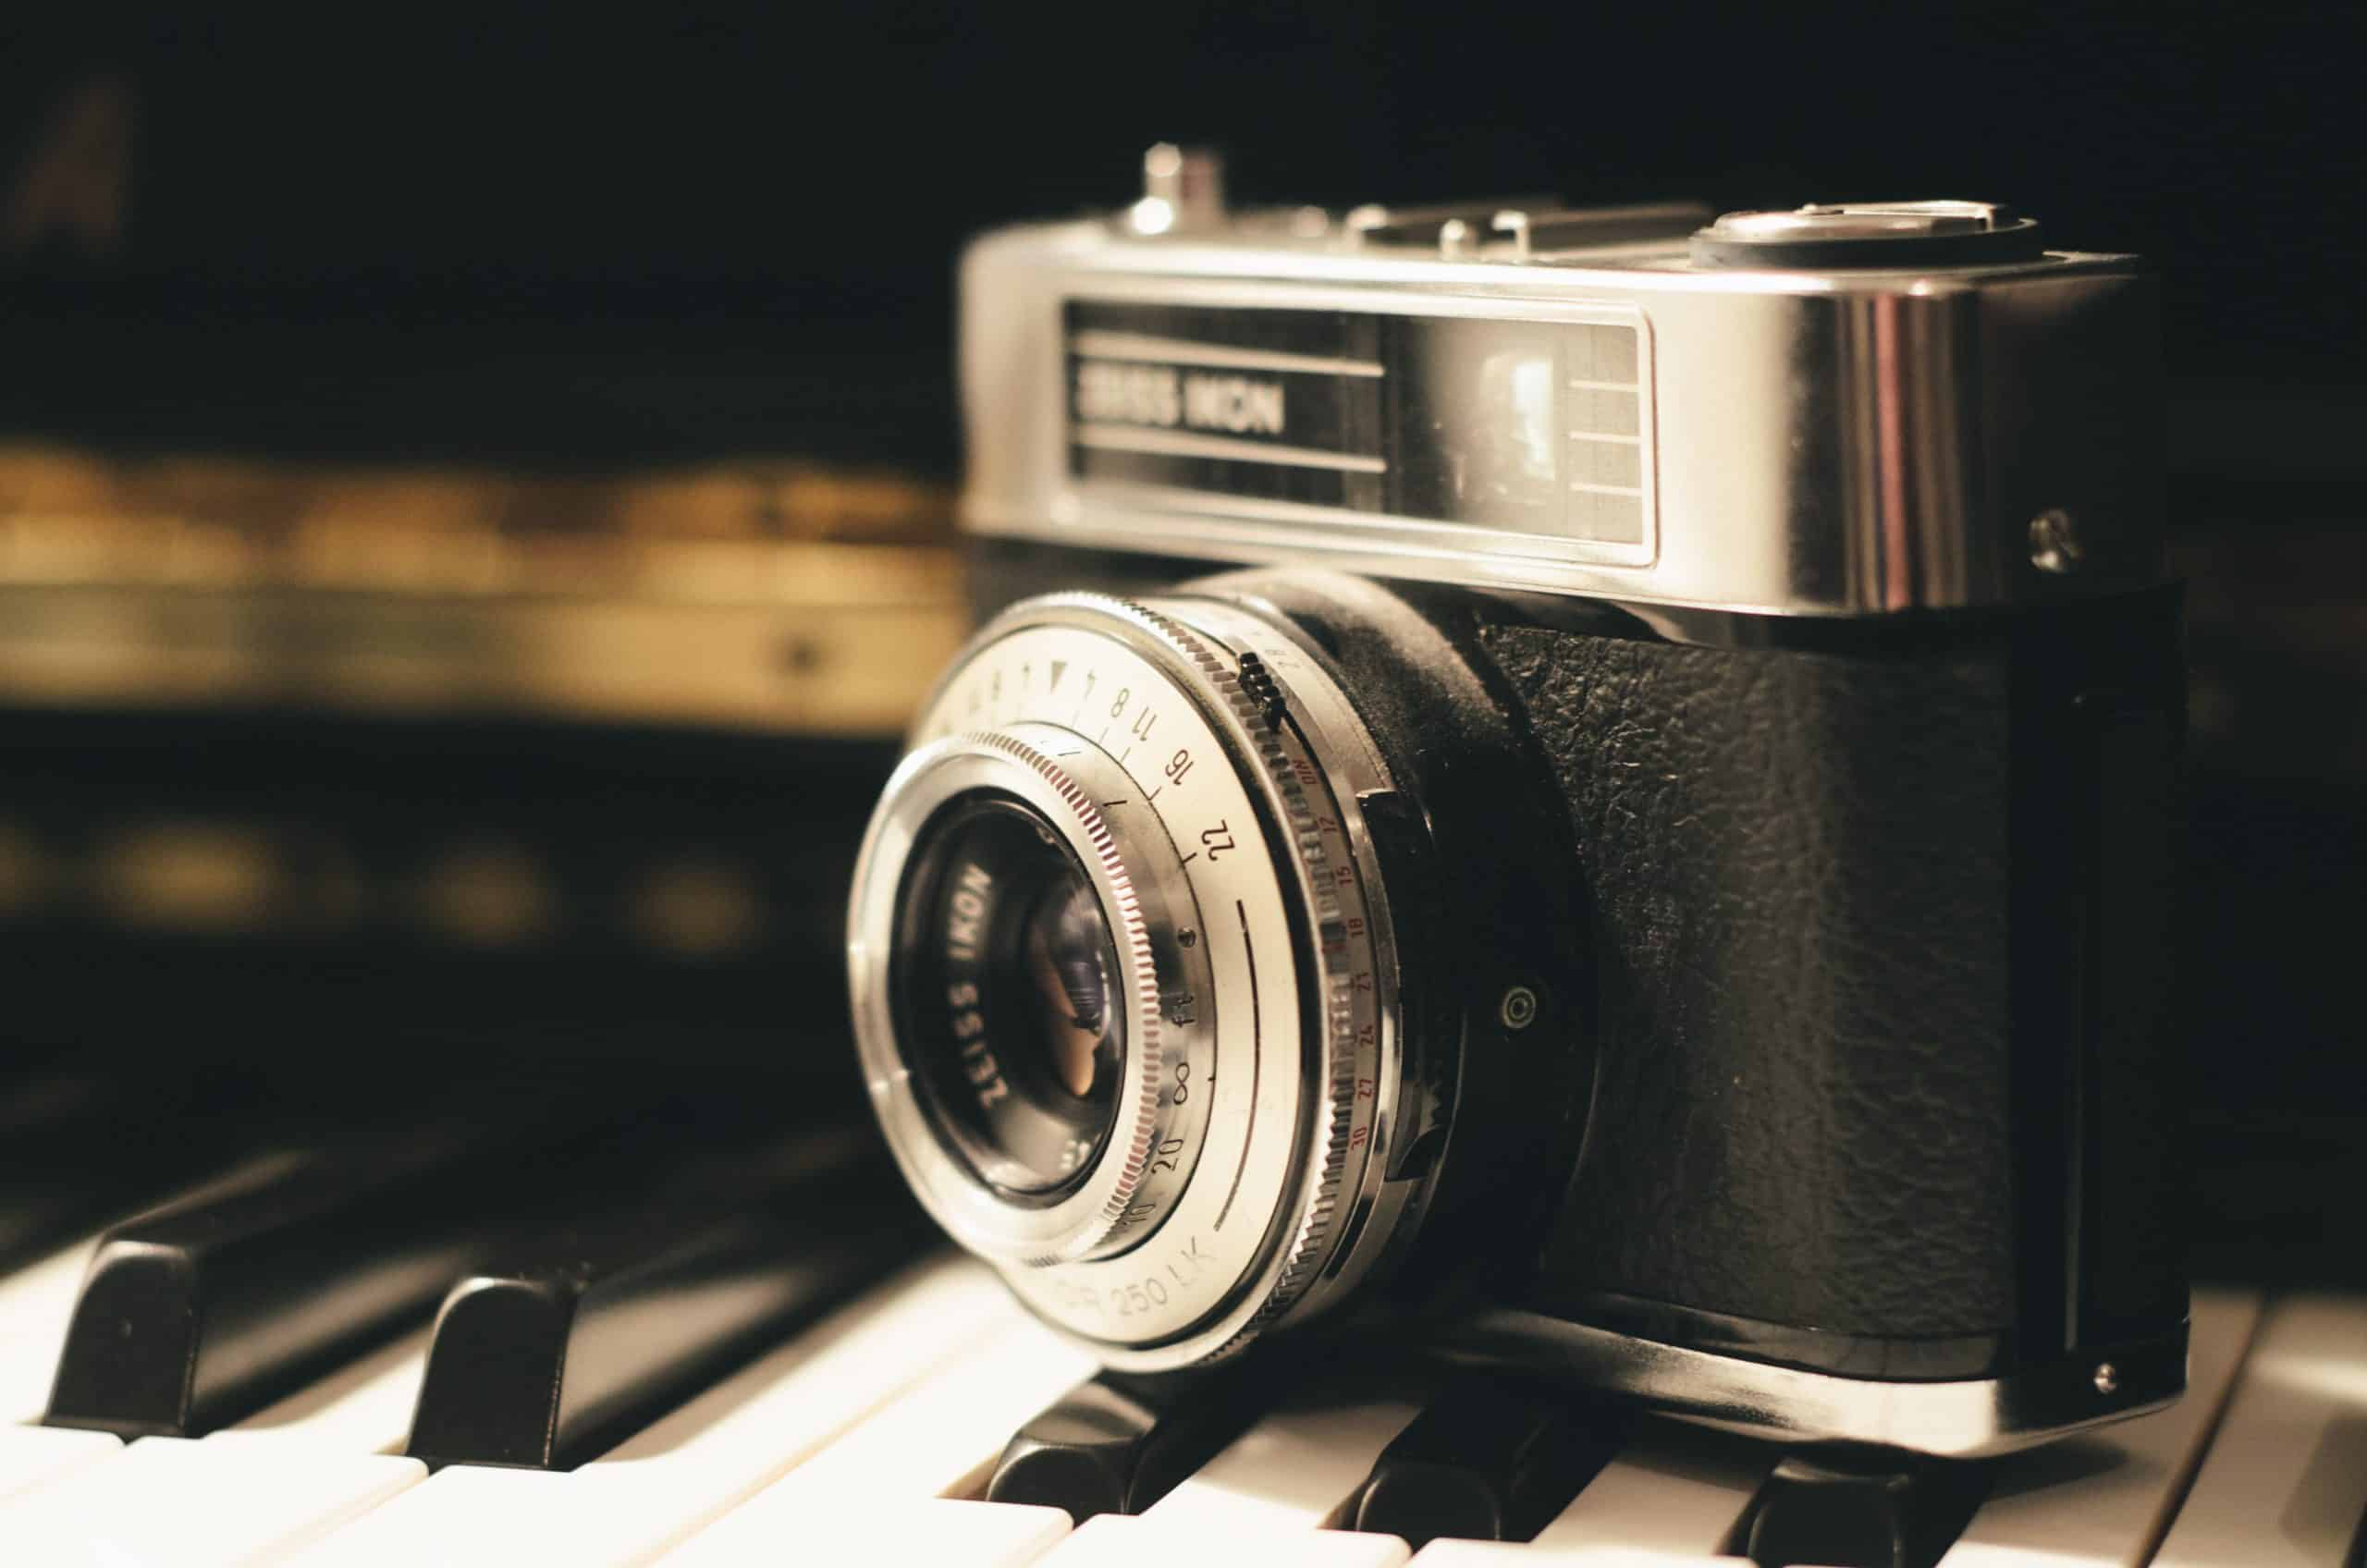 Here are some vintage photography tips to give your photos that old-time look.